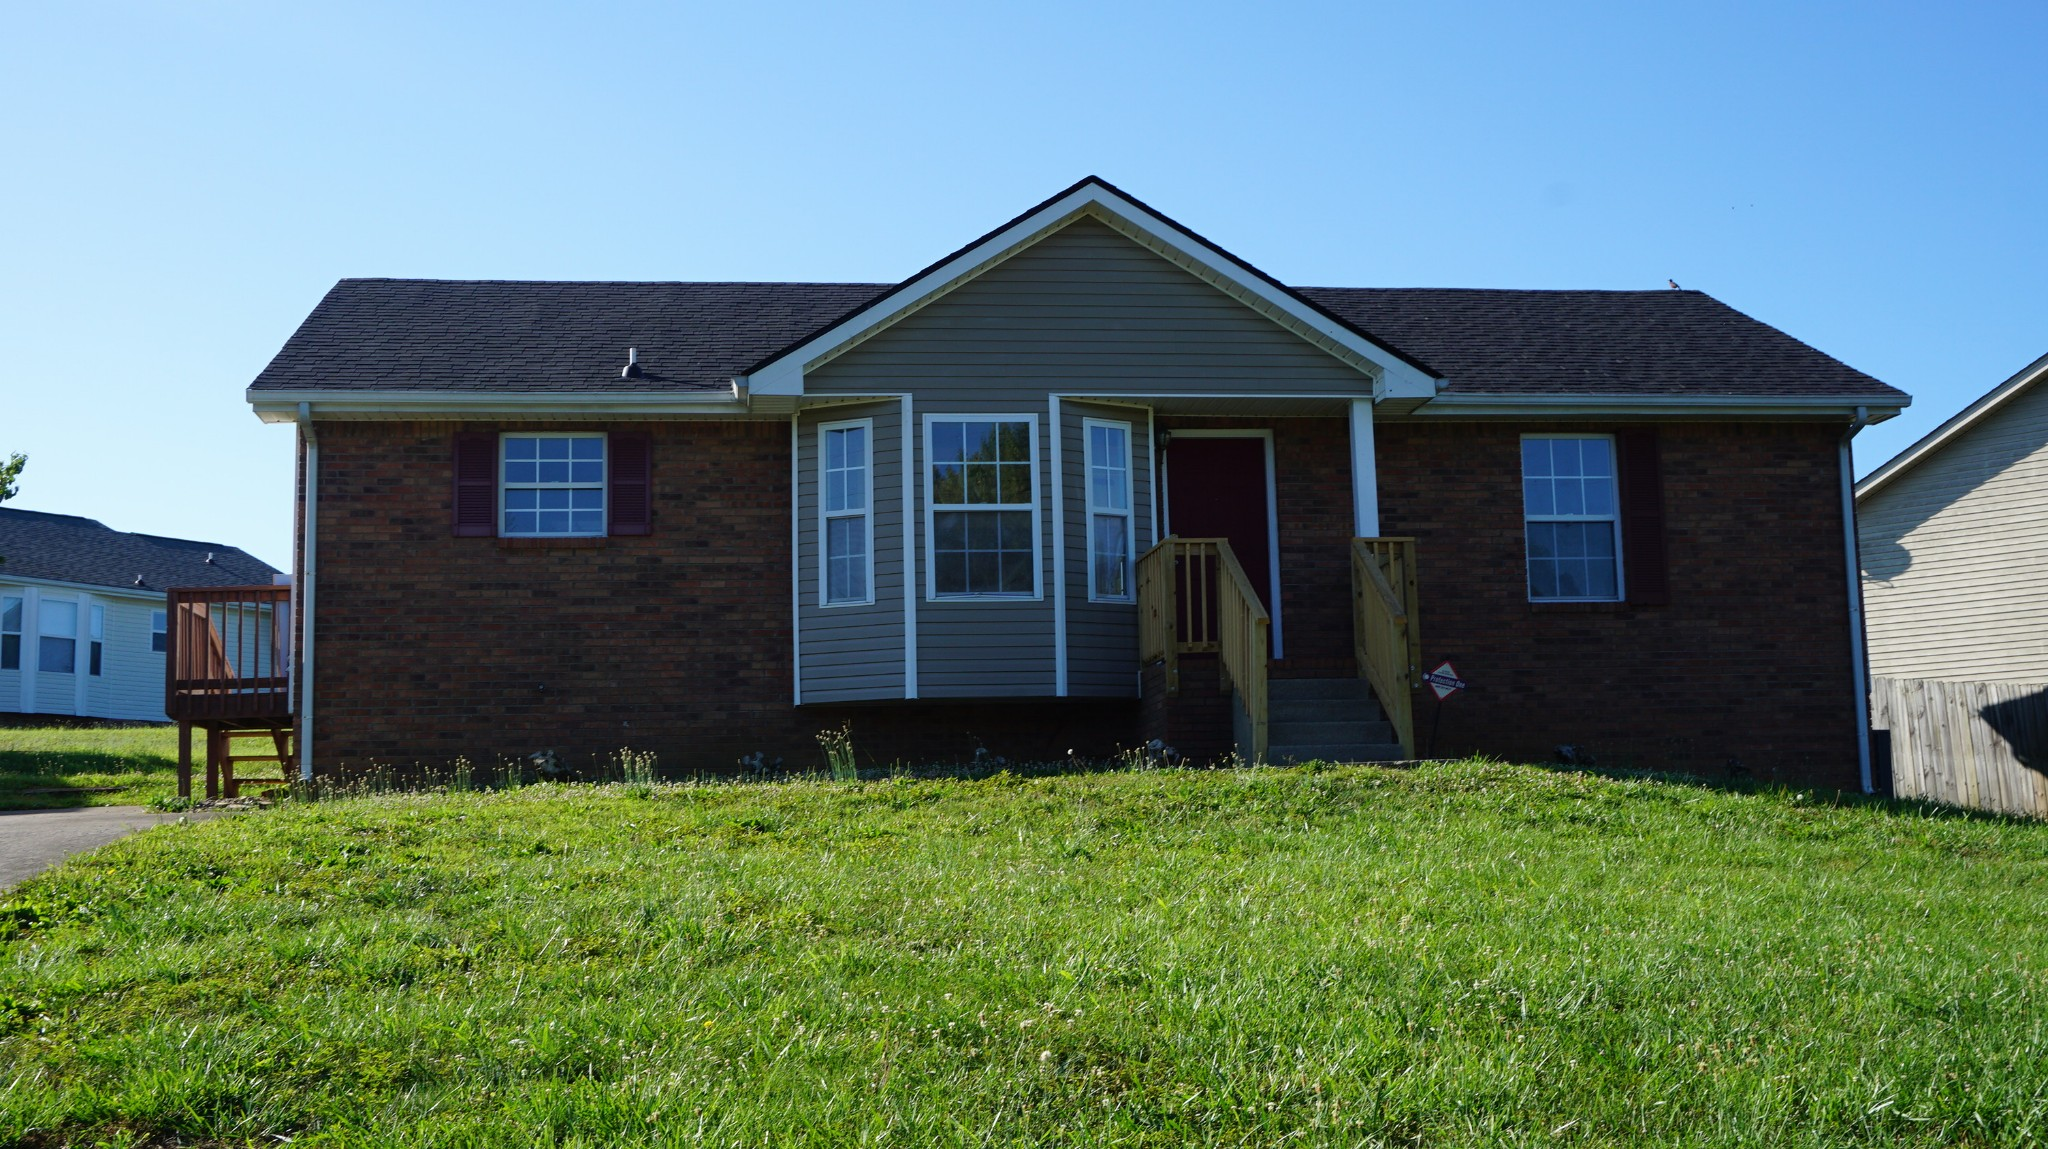 VERY NICE RANCH. FEATURES 3 BEDROOMS, 2 FULL BATHS, NEW FLOORING IN LIVING ROOM, DINING ROOM, BEDROOMS, AND KITCHEN, FRESHLY PAINTED.